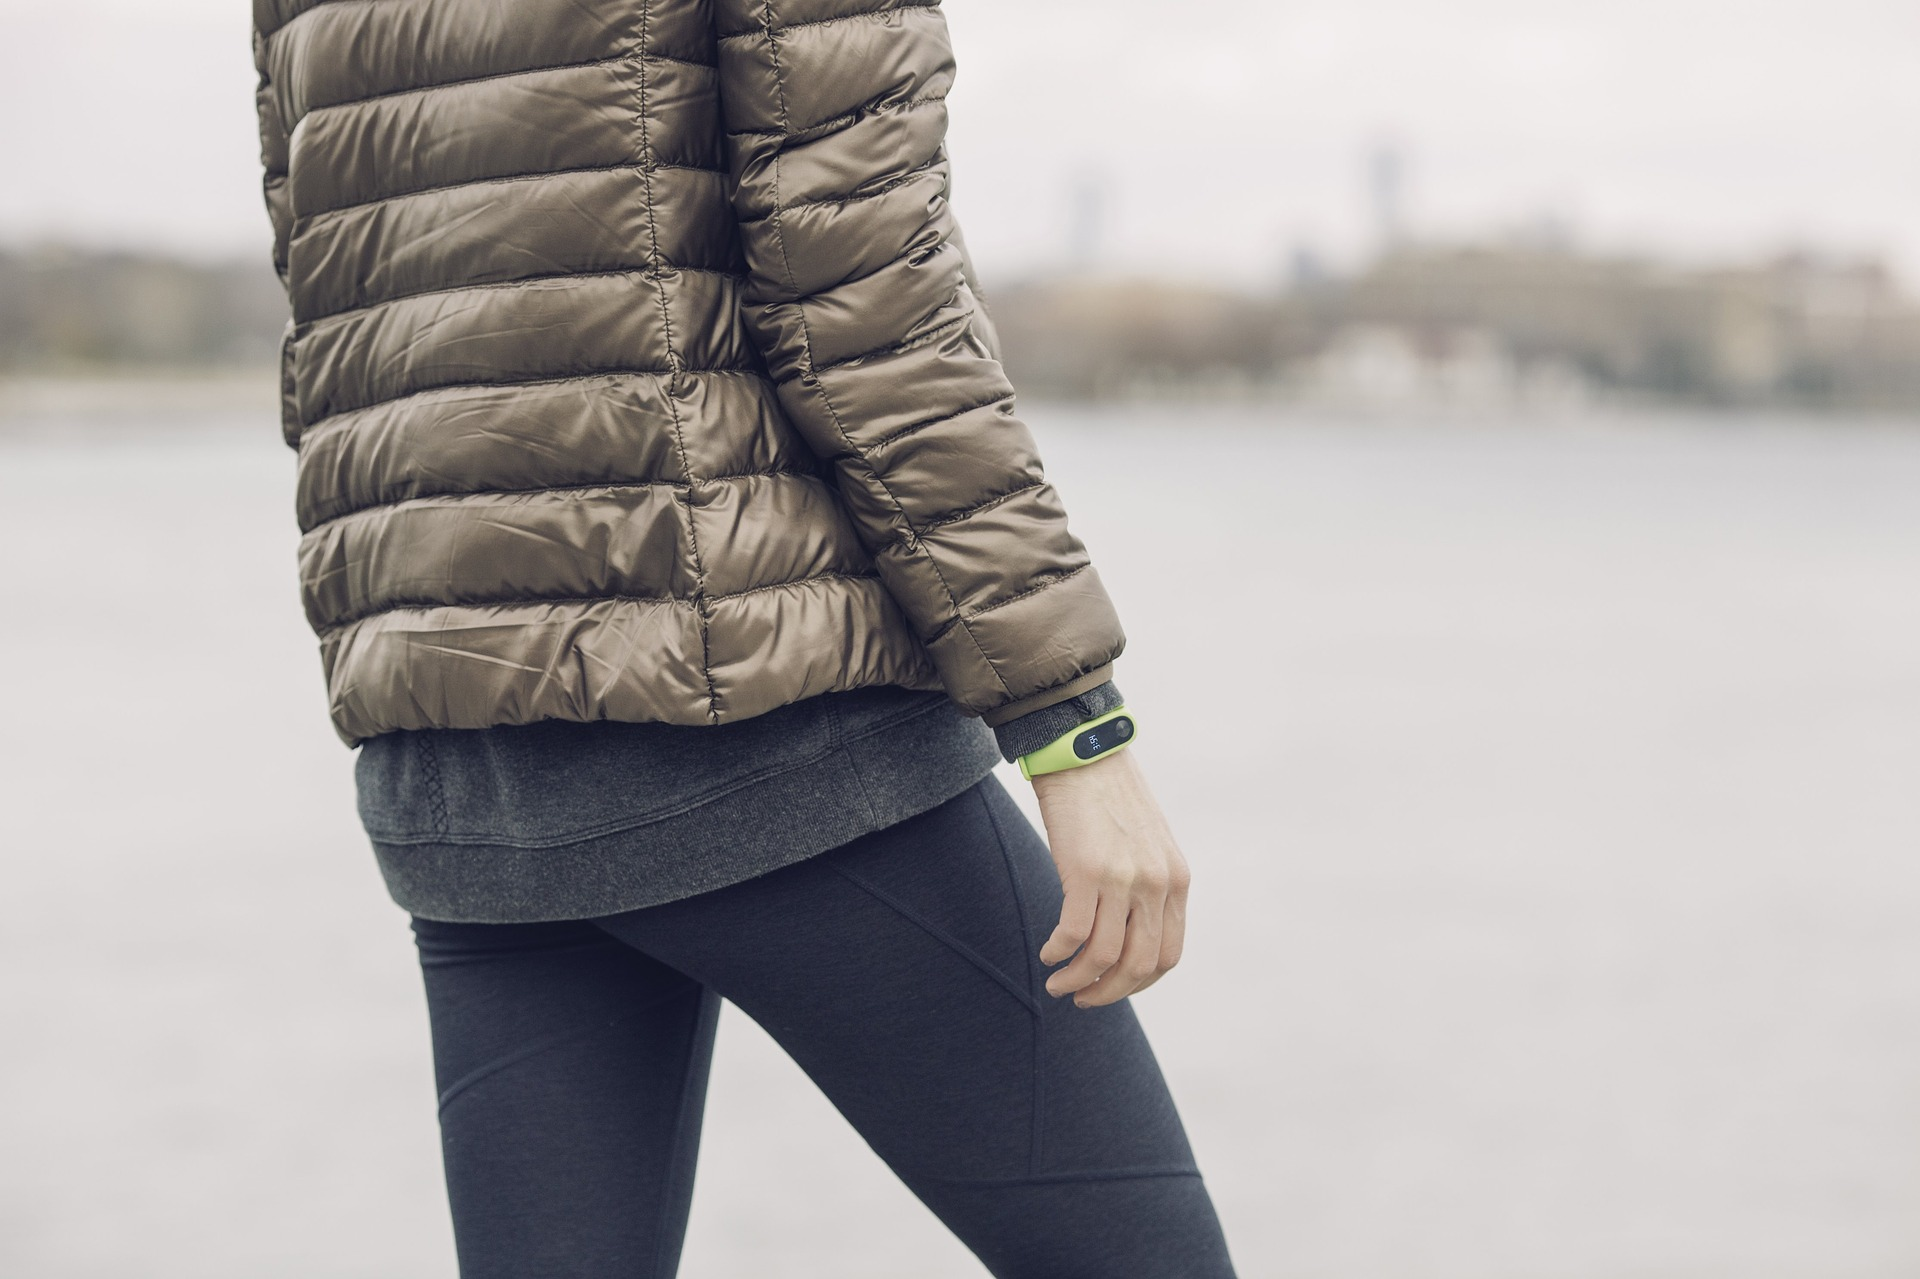 Woman in leggings and brown puffy coat standing next to water with fitness tracker on wrist